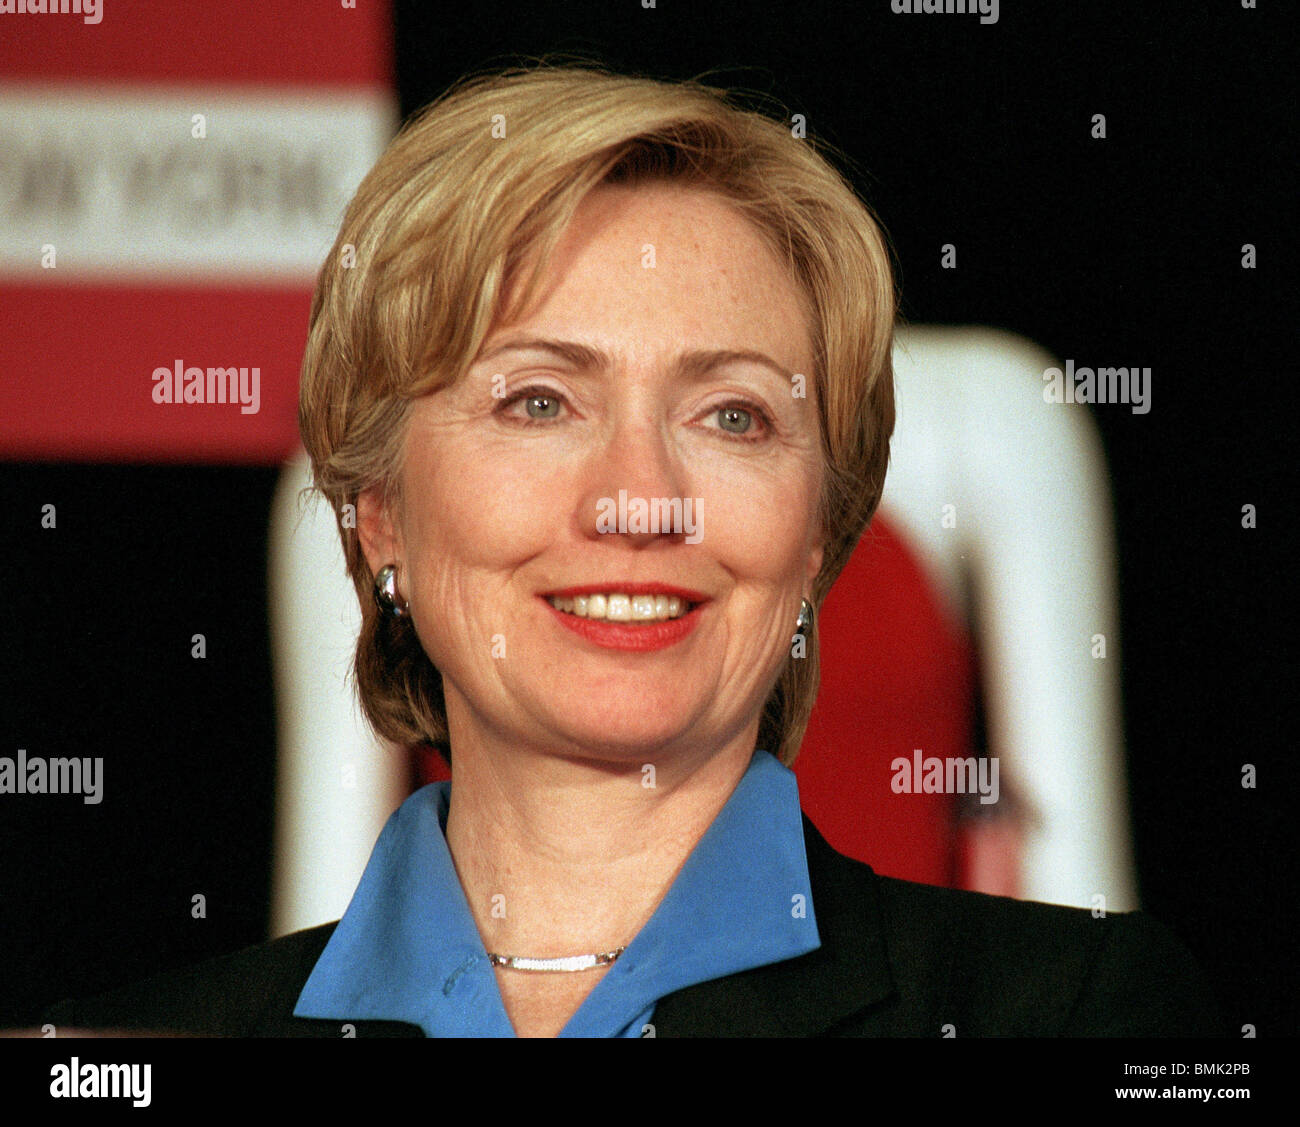 Hillary Clinton Latest News: New York State Senator Hillary Clinton Appears At A UNITE